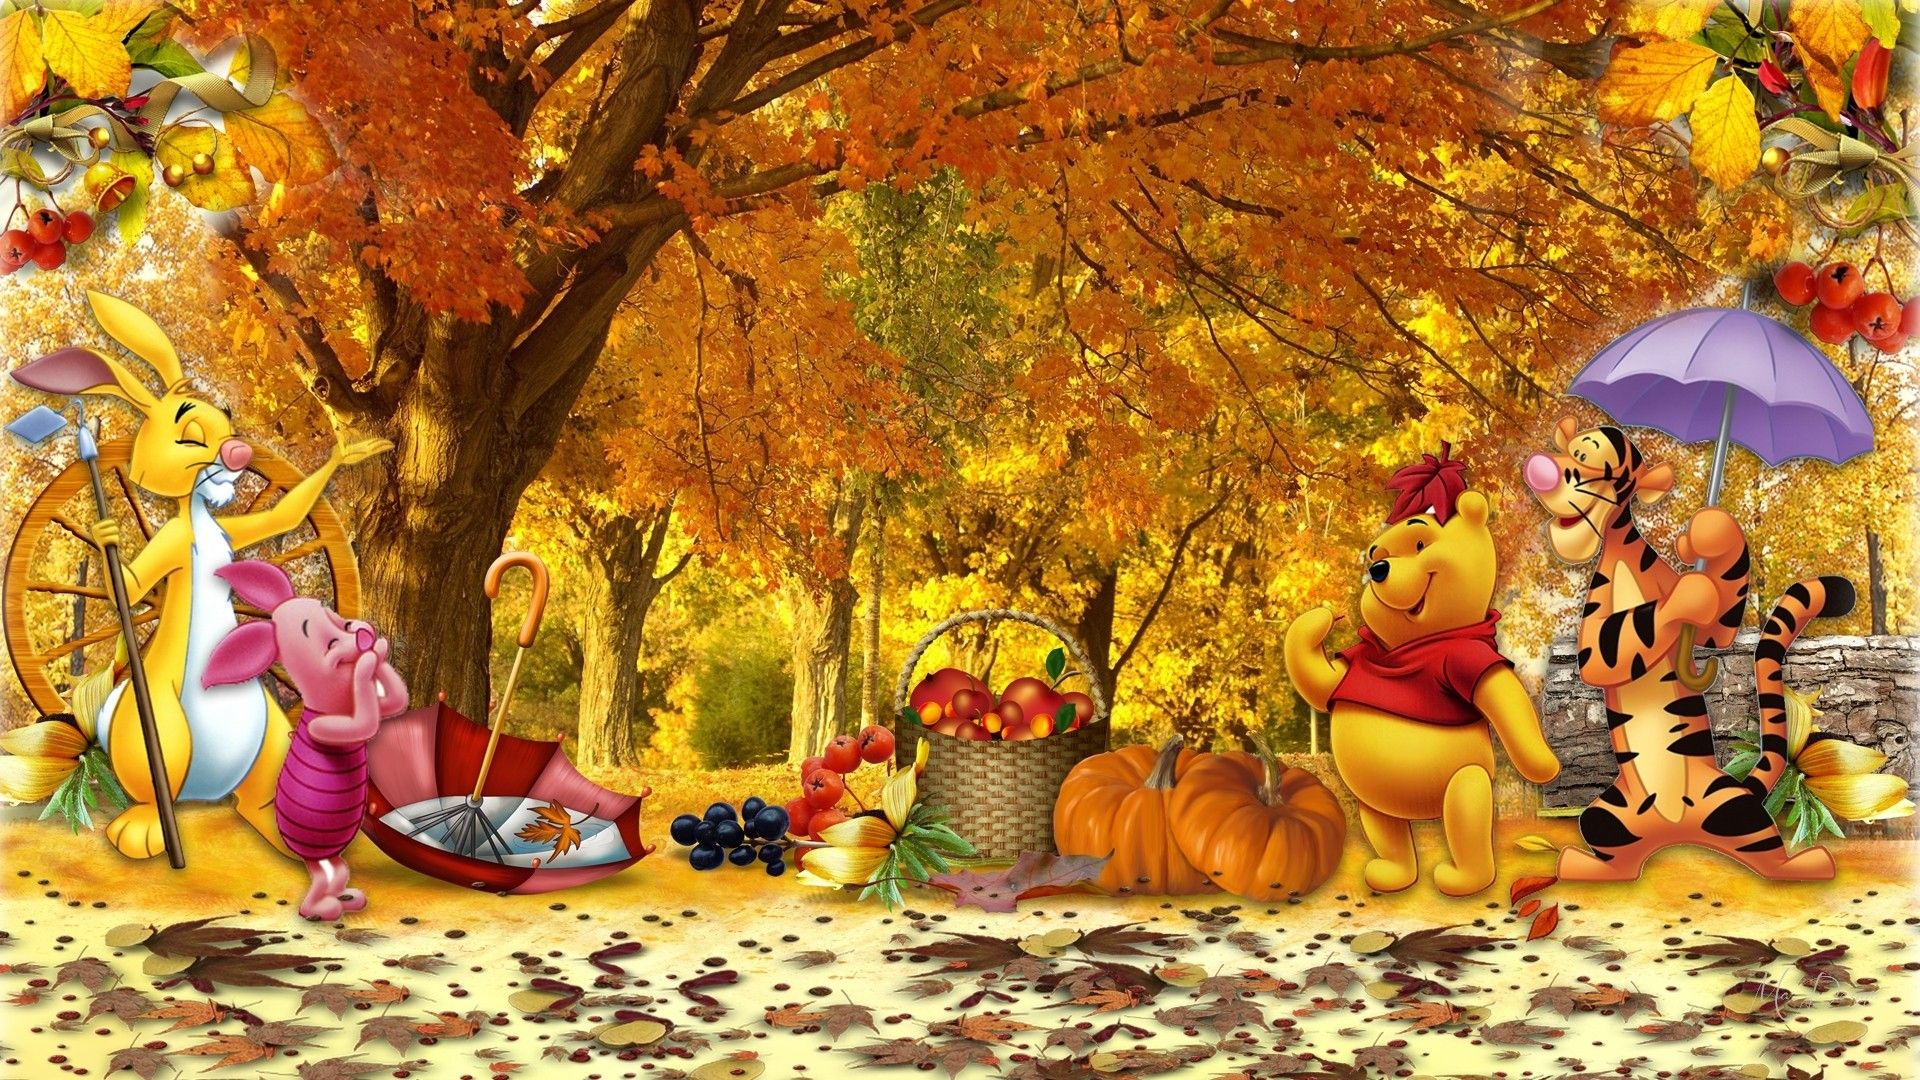 Winnie the Pooh Thanksgiving Wallpapers - Top Free Winnie ...